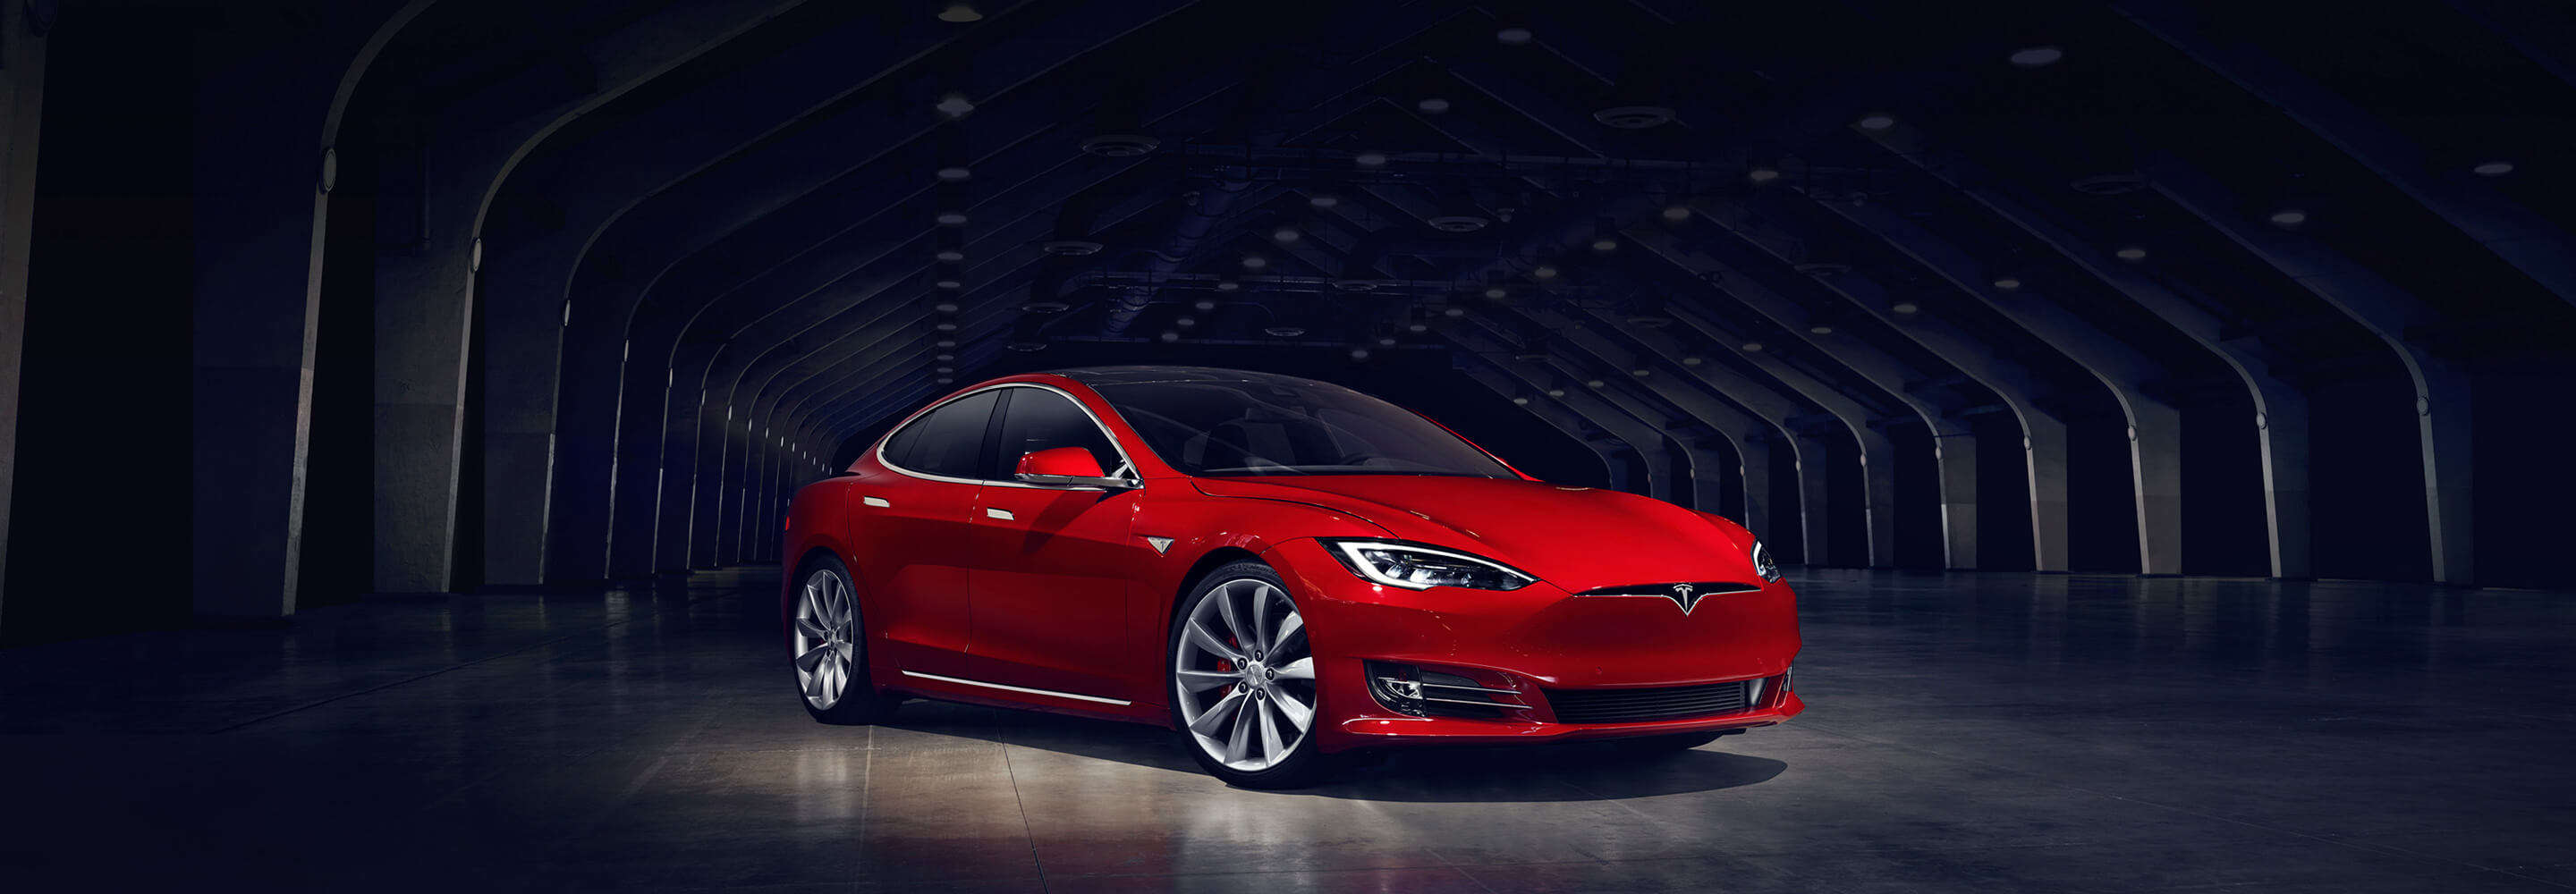 The Autopilot Feature In Tesla S Renders It The Safest EV.